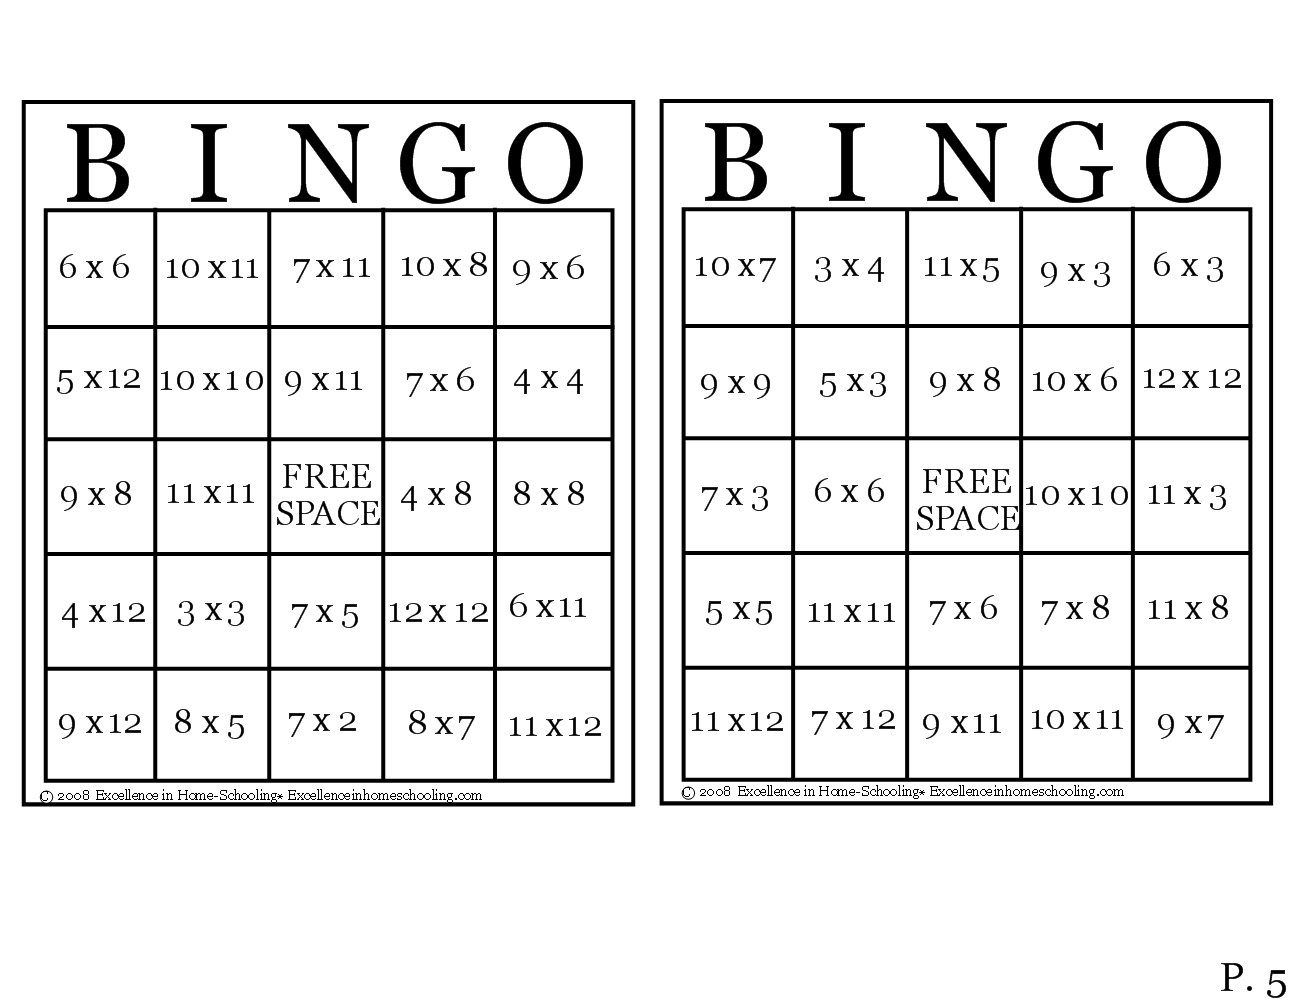 laura's frayed knot: times table bingo